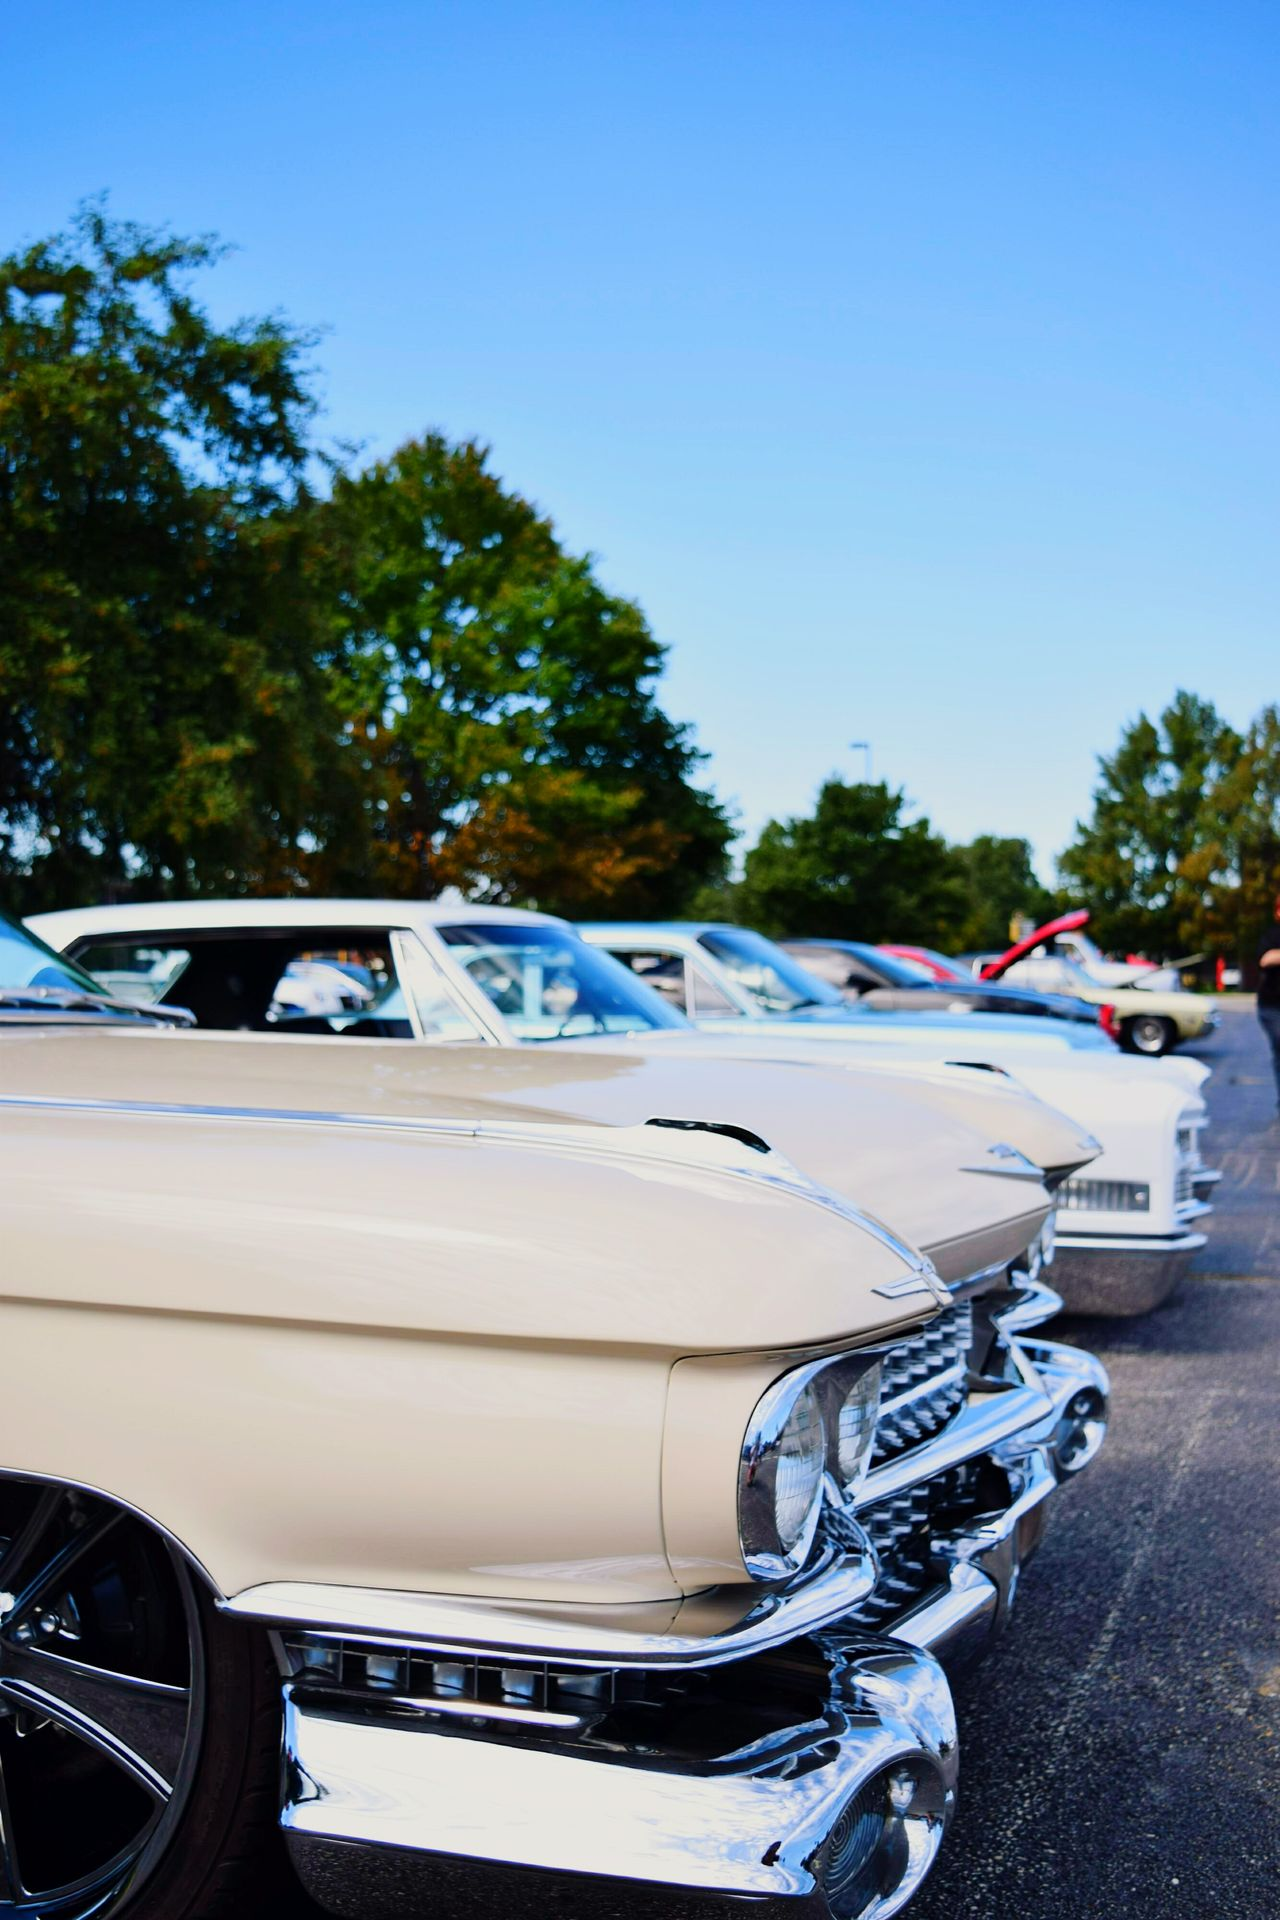 Old Car Old Cars ❤ Old Cars Cars Car CarShow Sunshine Sun Carshow! Hammond Indiana Chicago Chicago Illinois Illinois Hot Rod Hot Rods Nikon